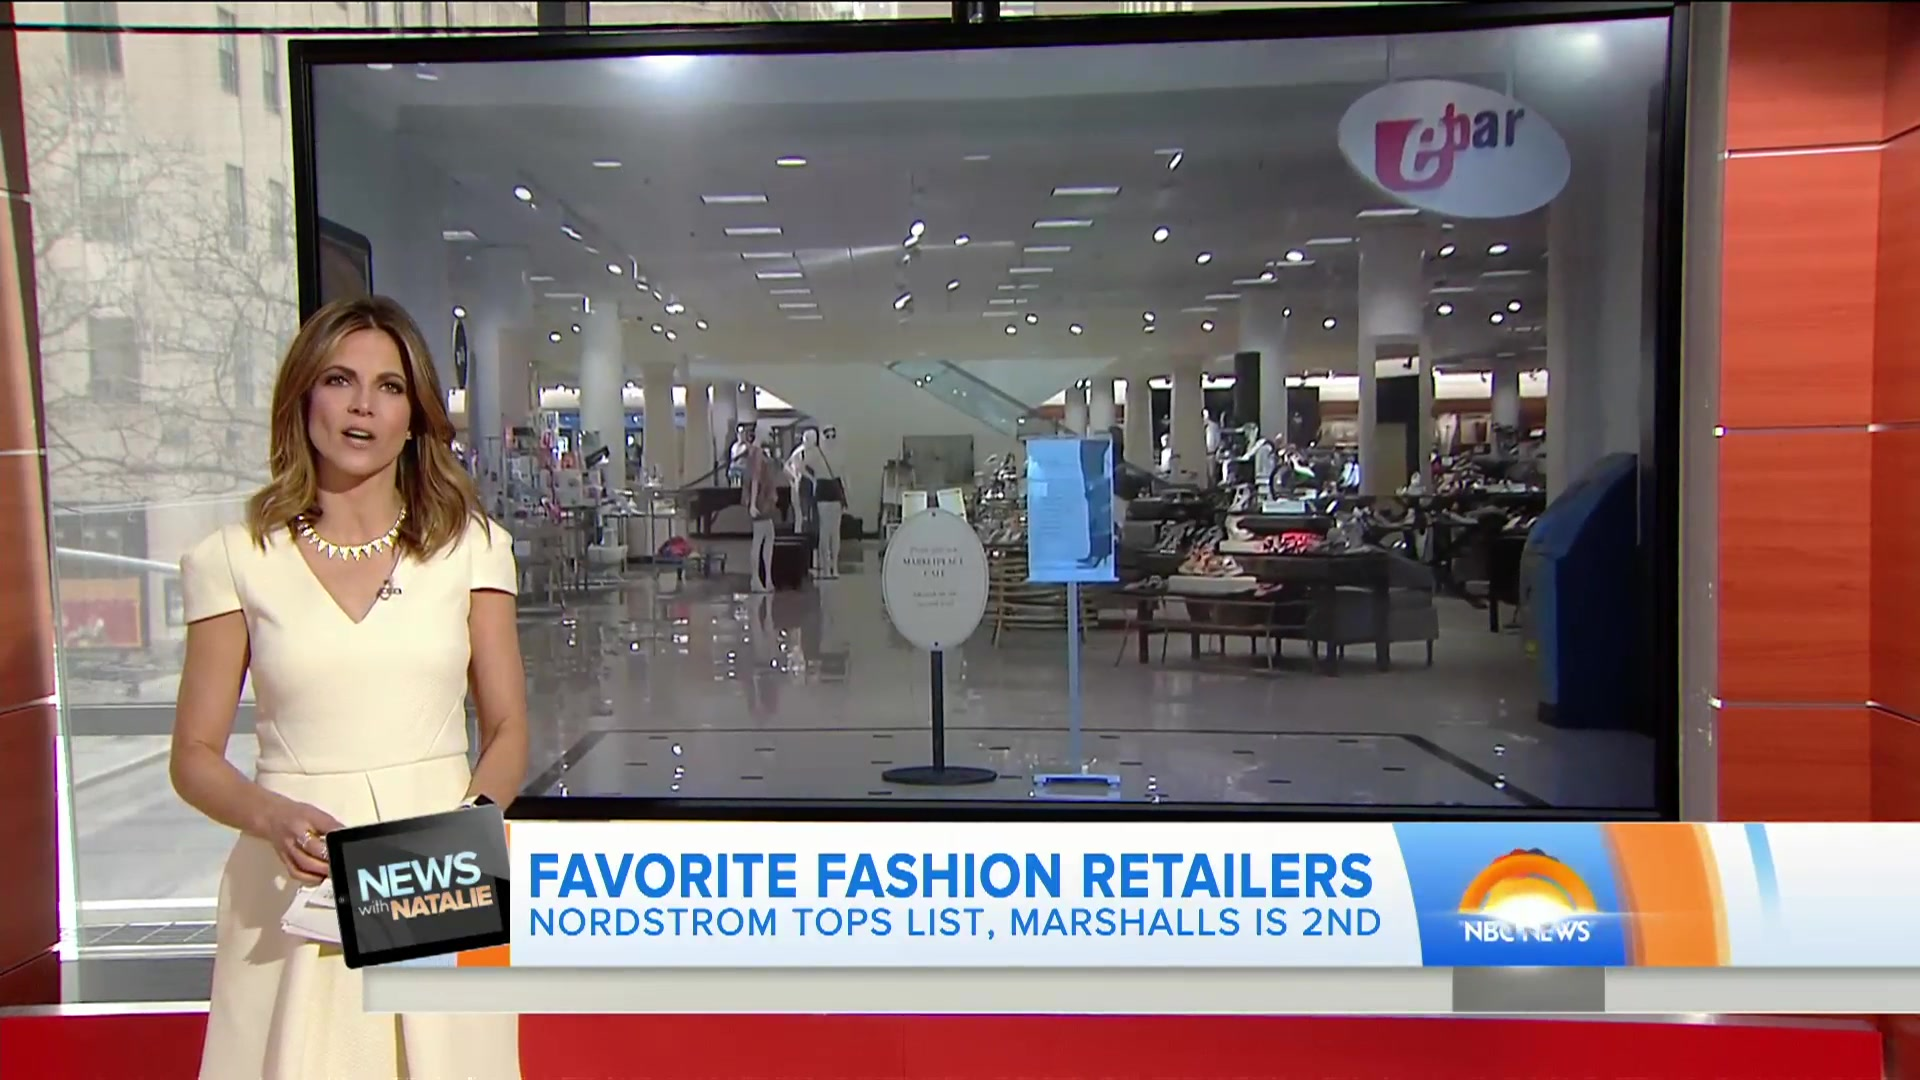 America's Favorite Fashion Retailer Is...